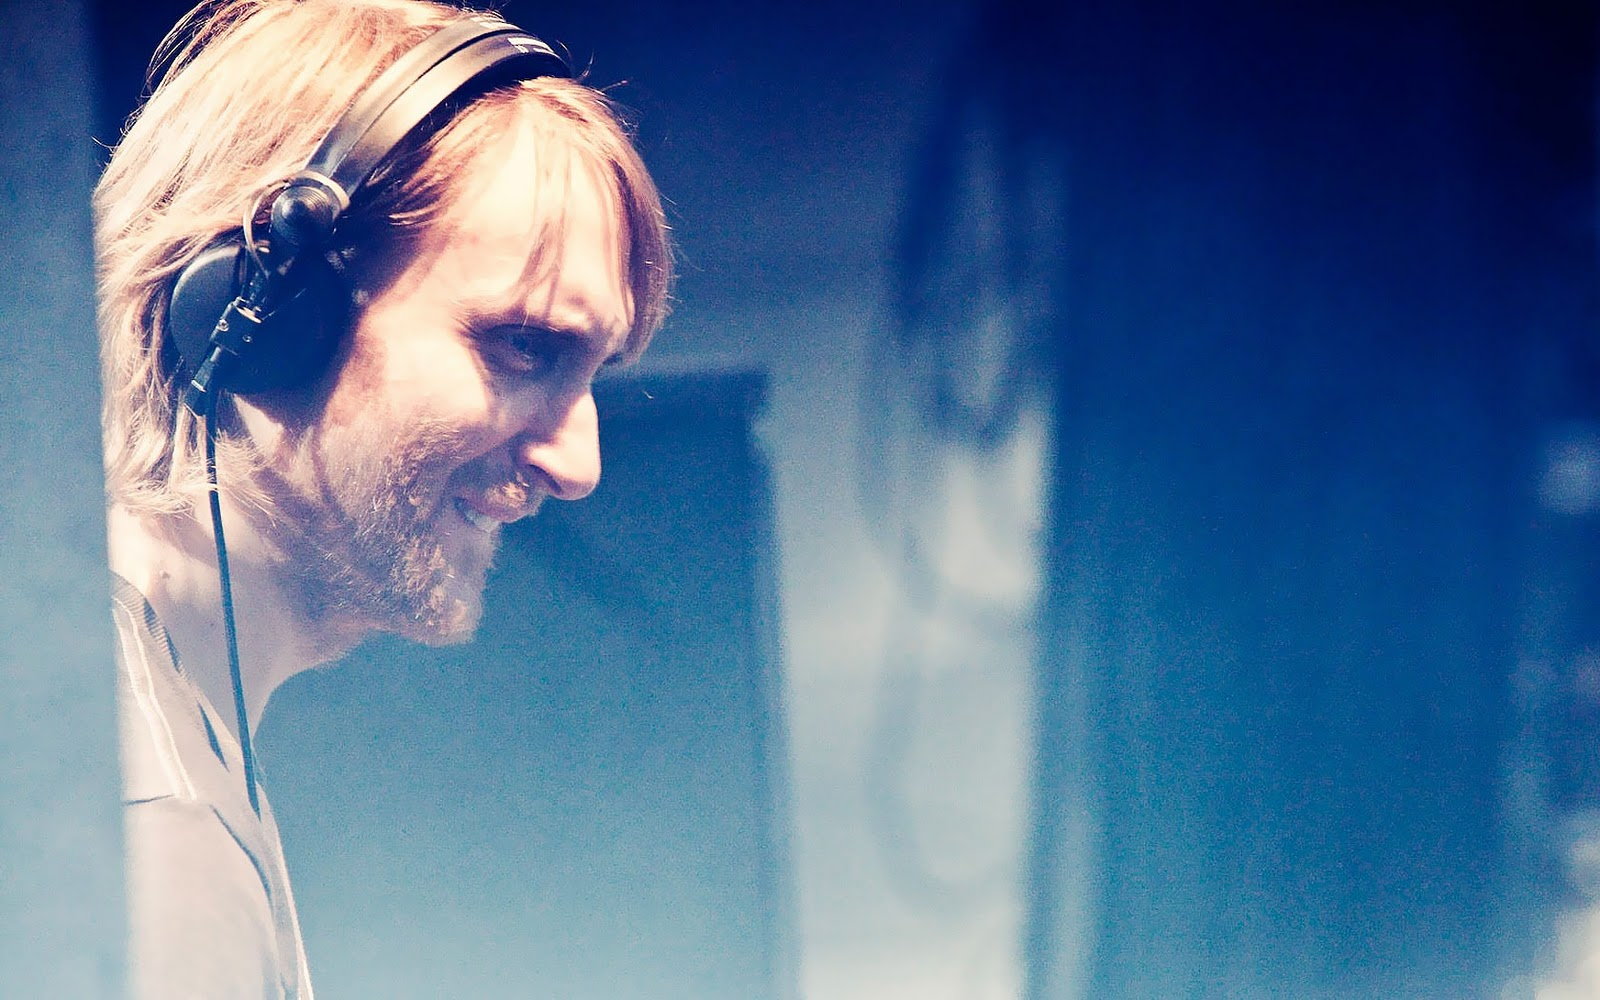 http://3.bp.blogspot.com/-TaUFzVRST5c/T_gwDpsFi-I/AAAAAAAAA0k/Qc9GRJZqT6U/s1600/Desktop-pictures-david-guetta-wallpapers-psuperos-david-guetta-wallpaper-7.jpg